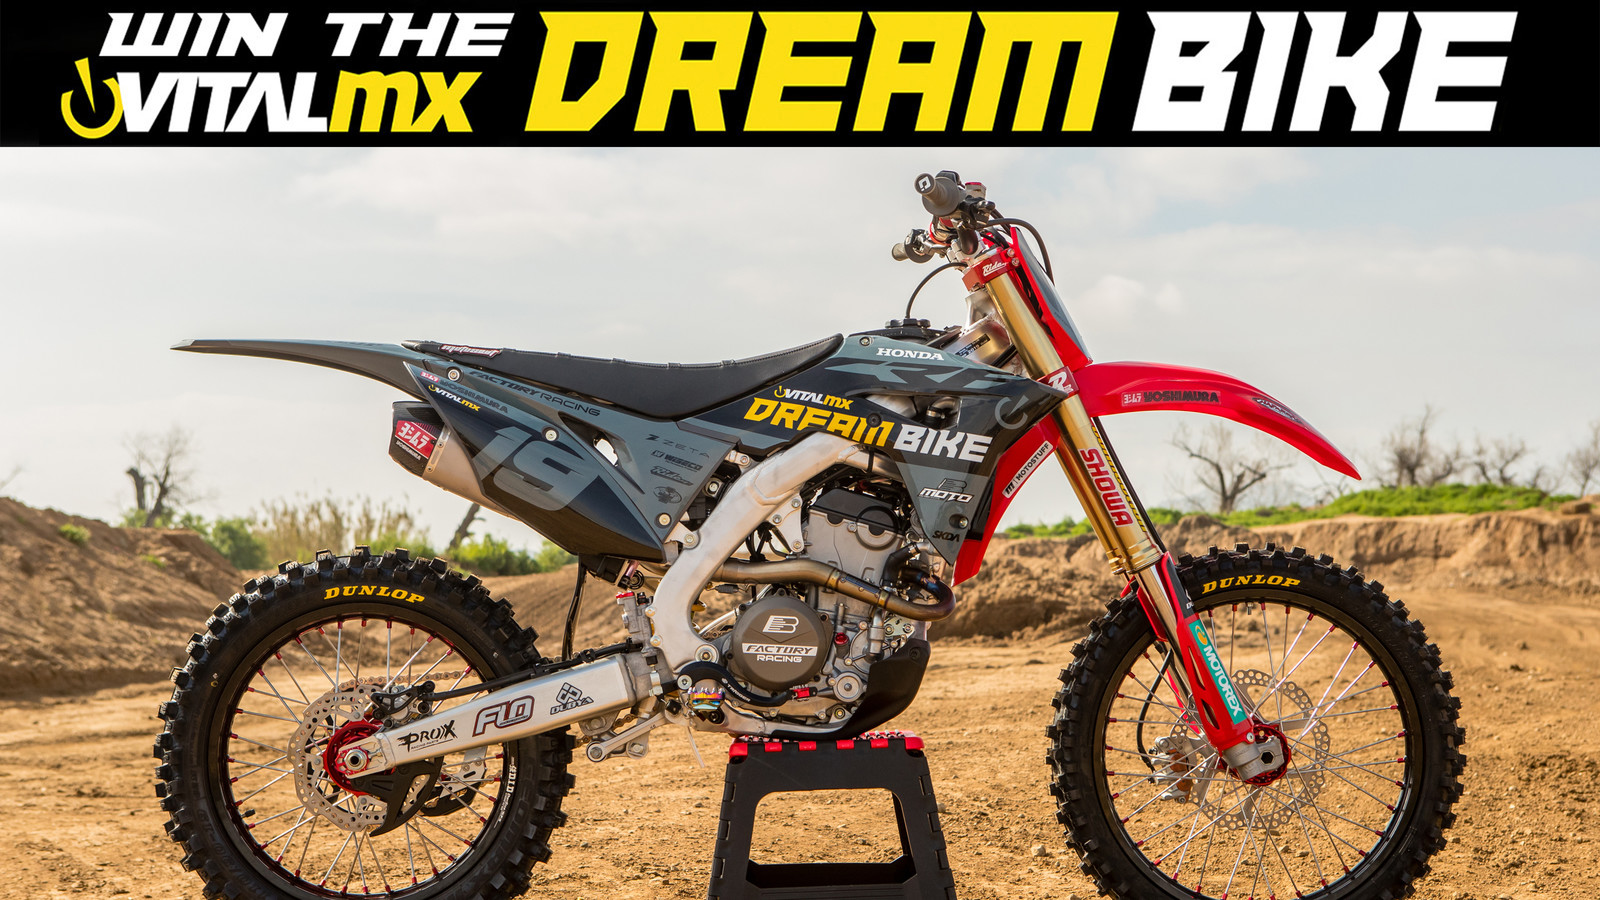 Win The Vital MX 2019 Honda CRF250R Dream Bike - Motocross